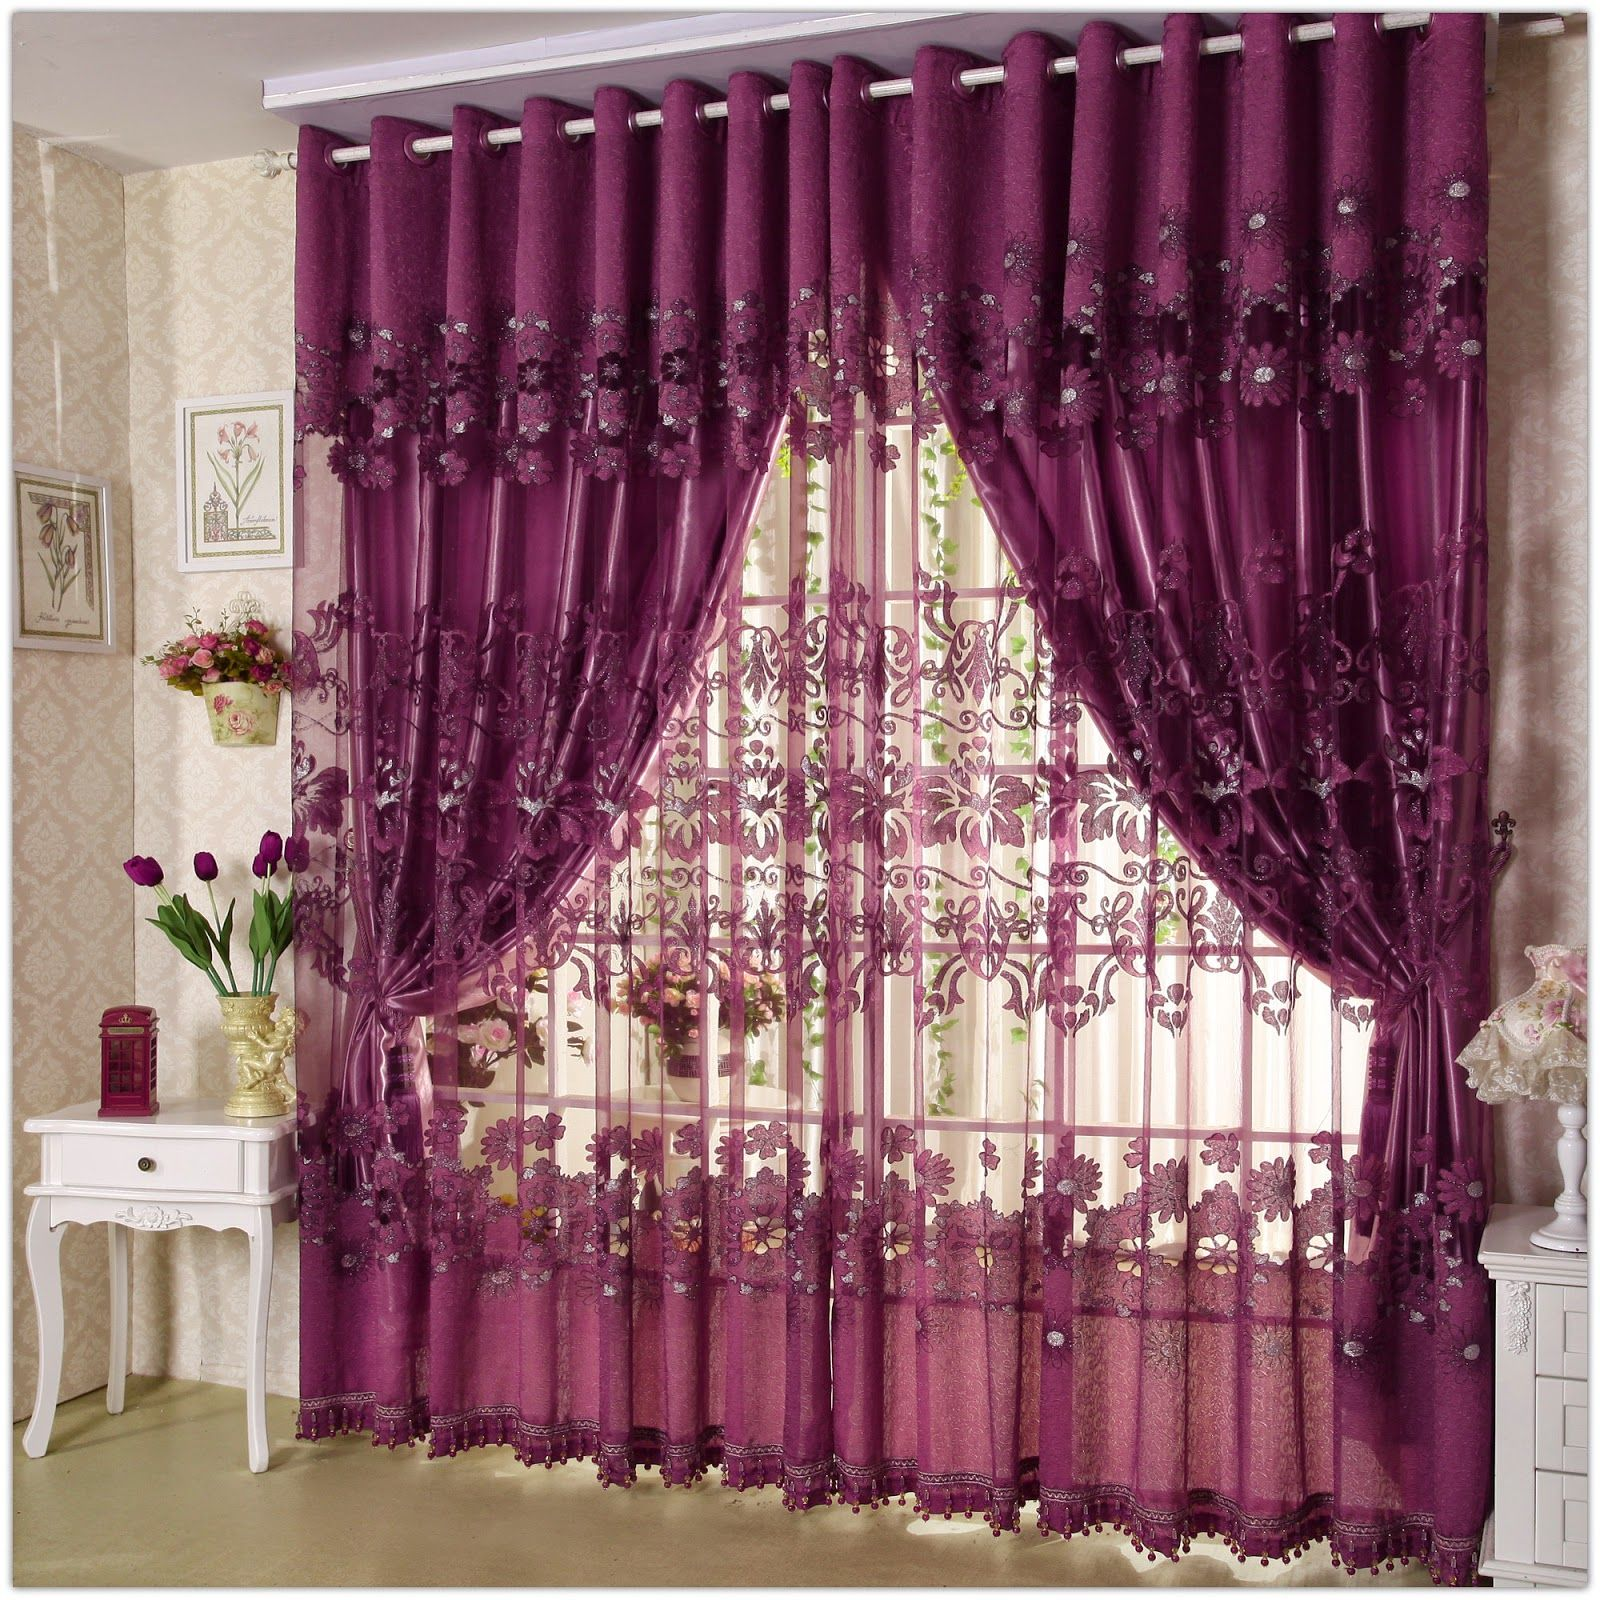 Modern living room curtains drapes - Unique Curtain Designs For Living Room Window Decorations